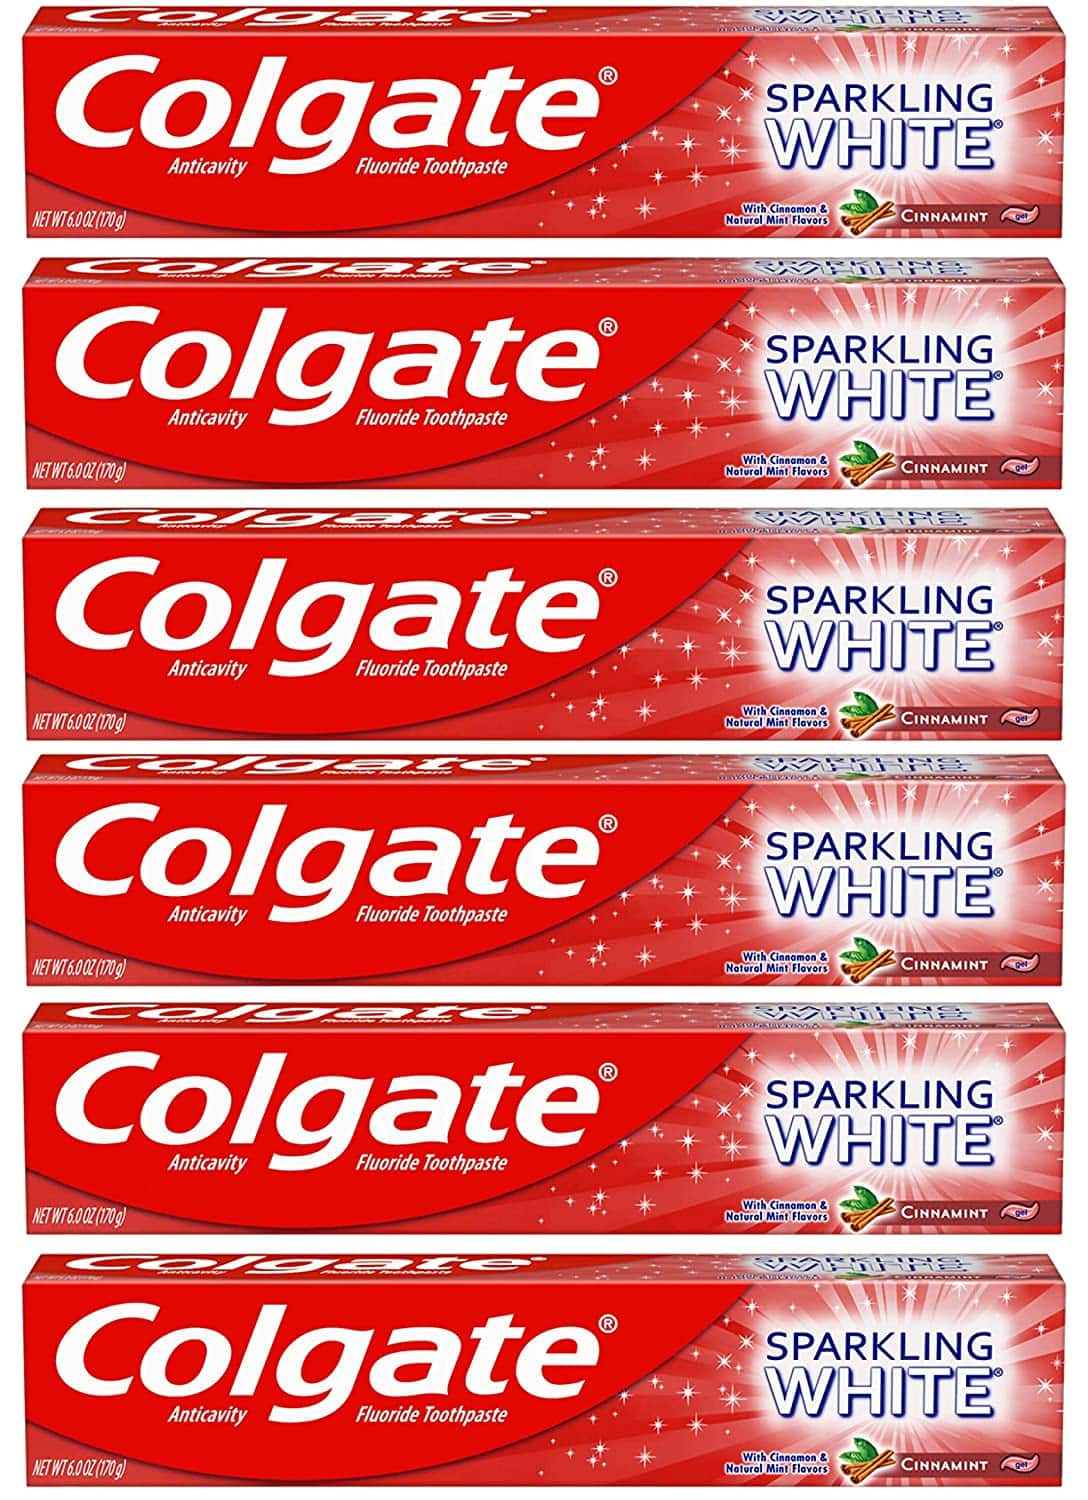 Colgate Sparkling White Whitening Toothpaste, Cinnamon Mint - 6 ounce (6 Pack) $7.52